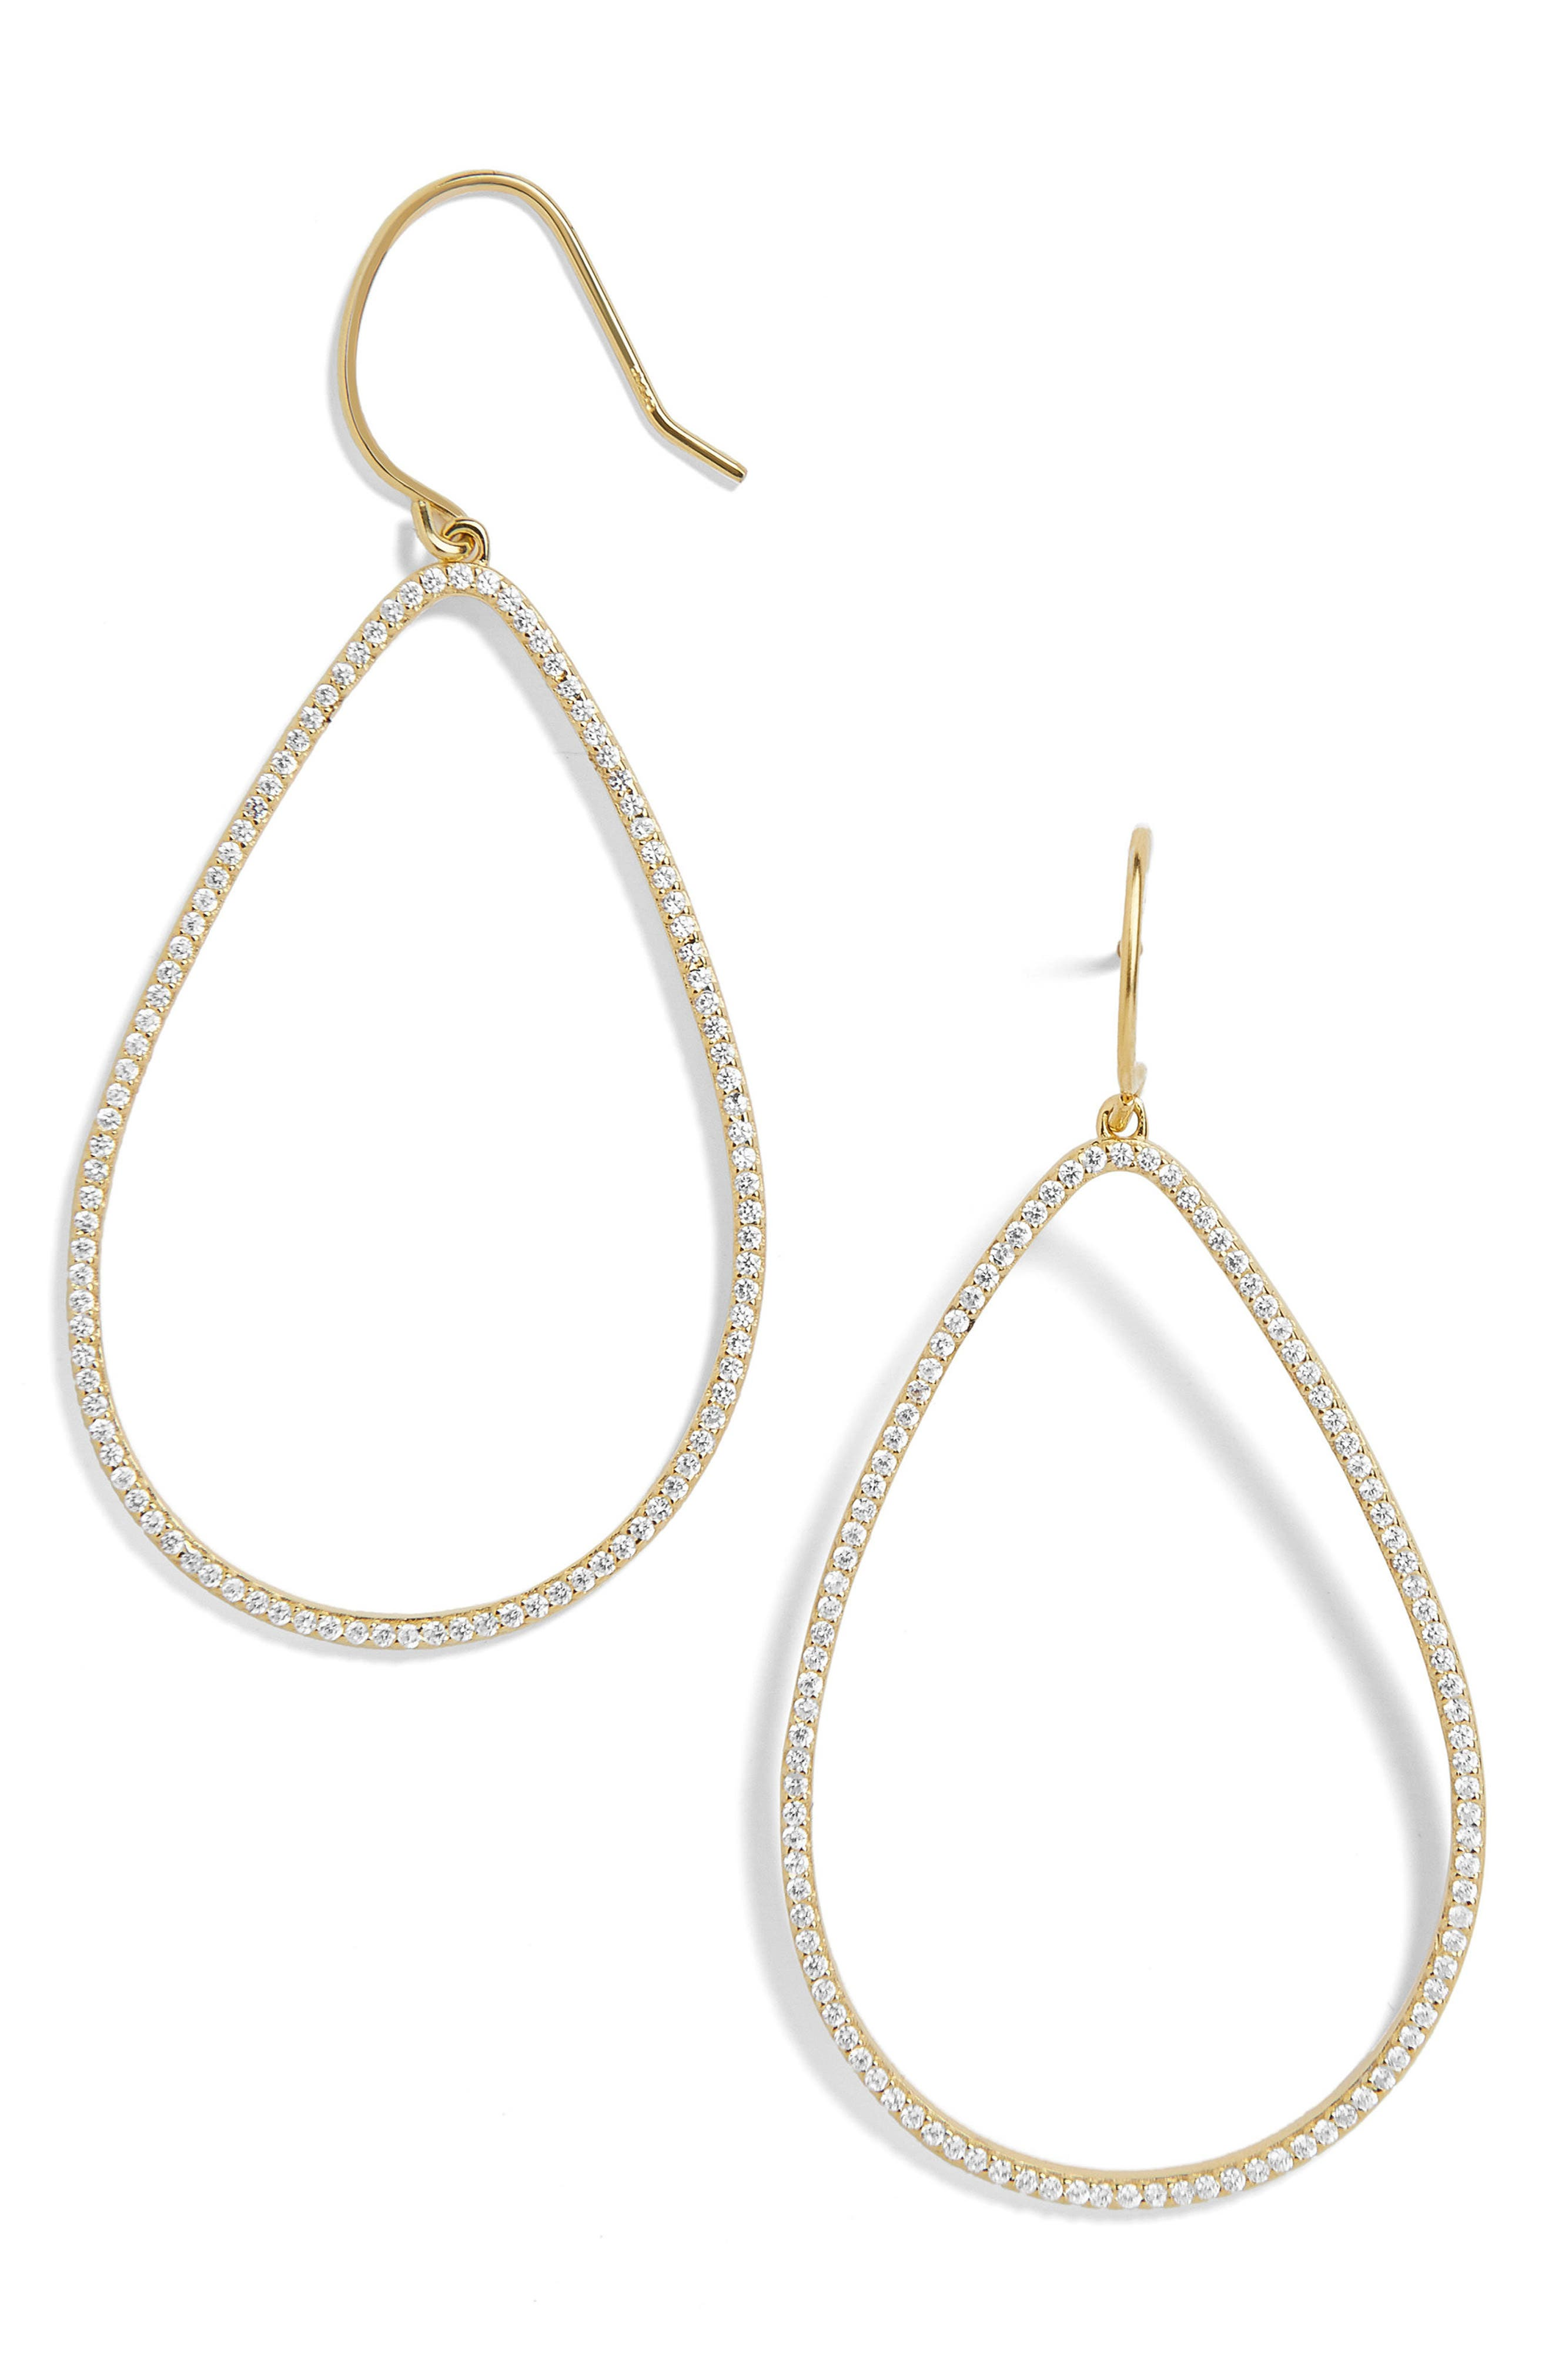 Everyday Fine Fishhook Crystal Teardrop Earrings,                         Main,                         color, Gold